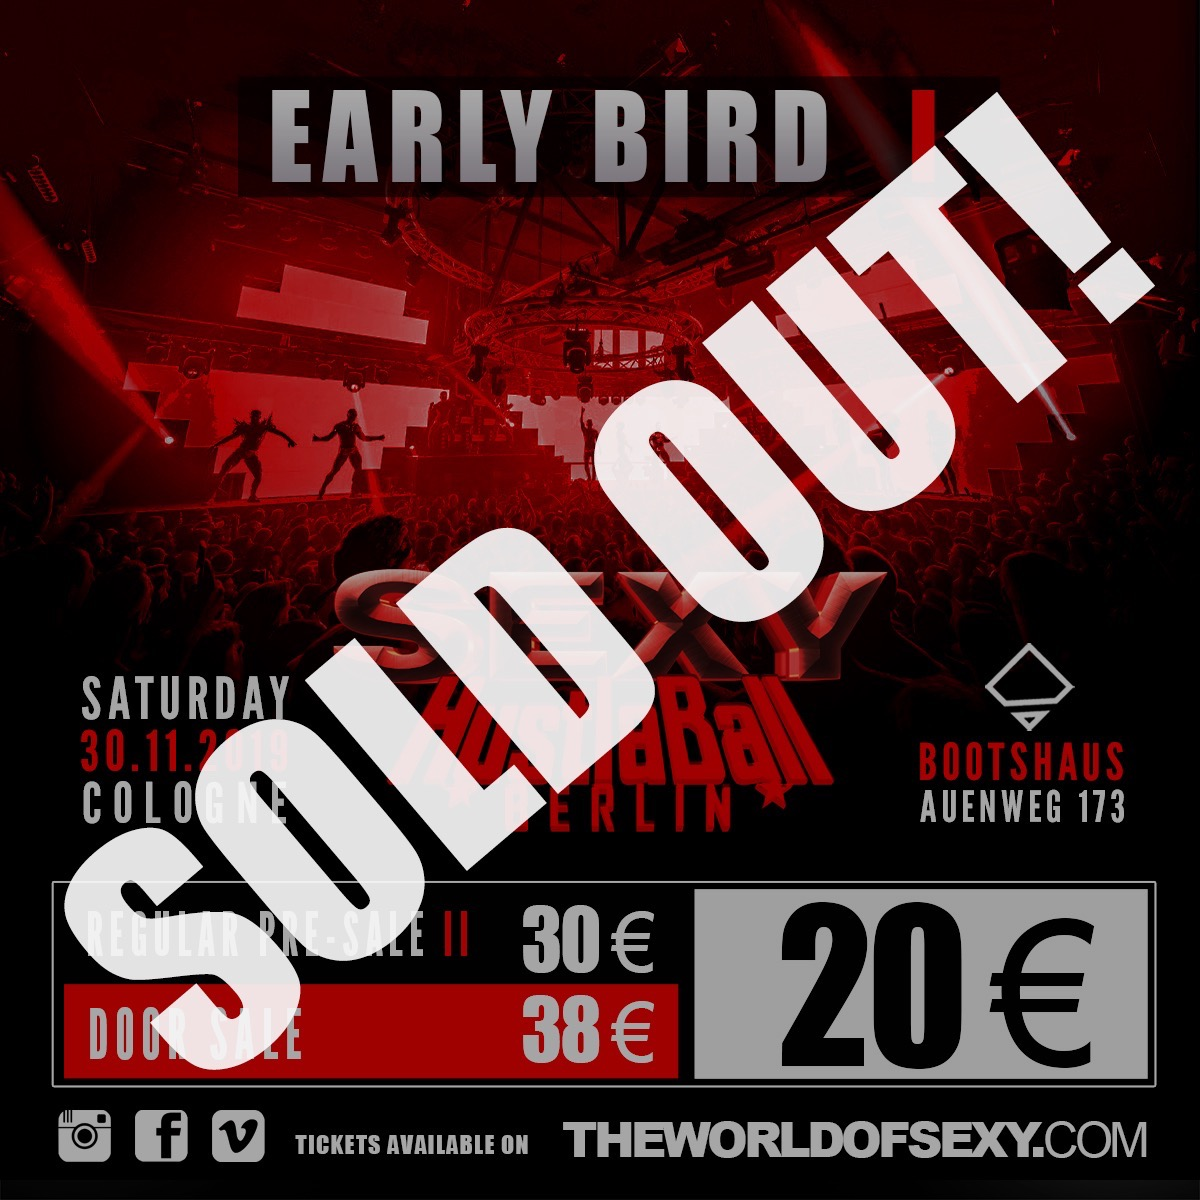 , SEXY HUSTLABALL EB 1 – 2019 – Is sold out!